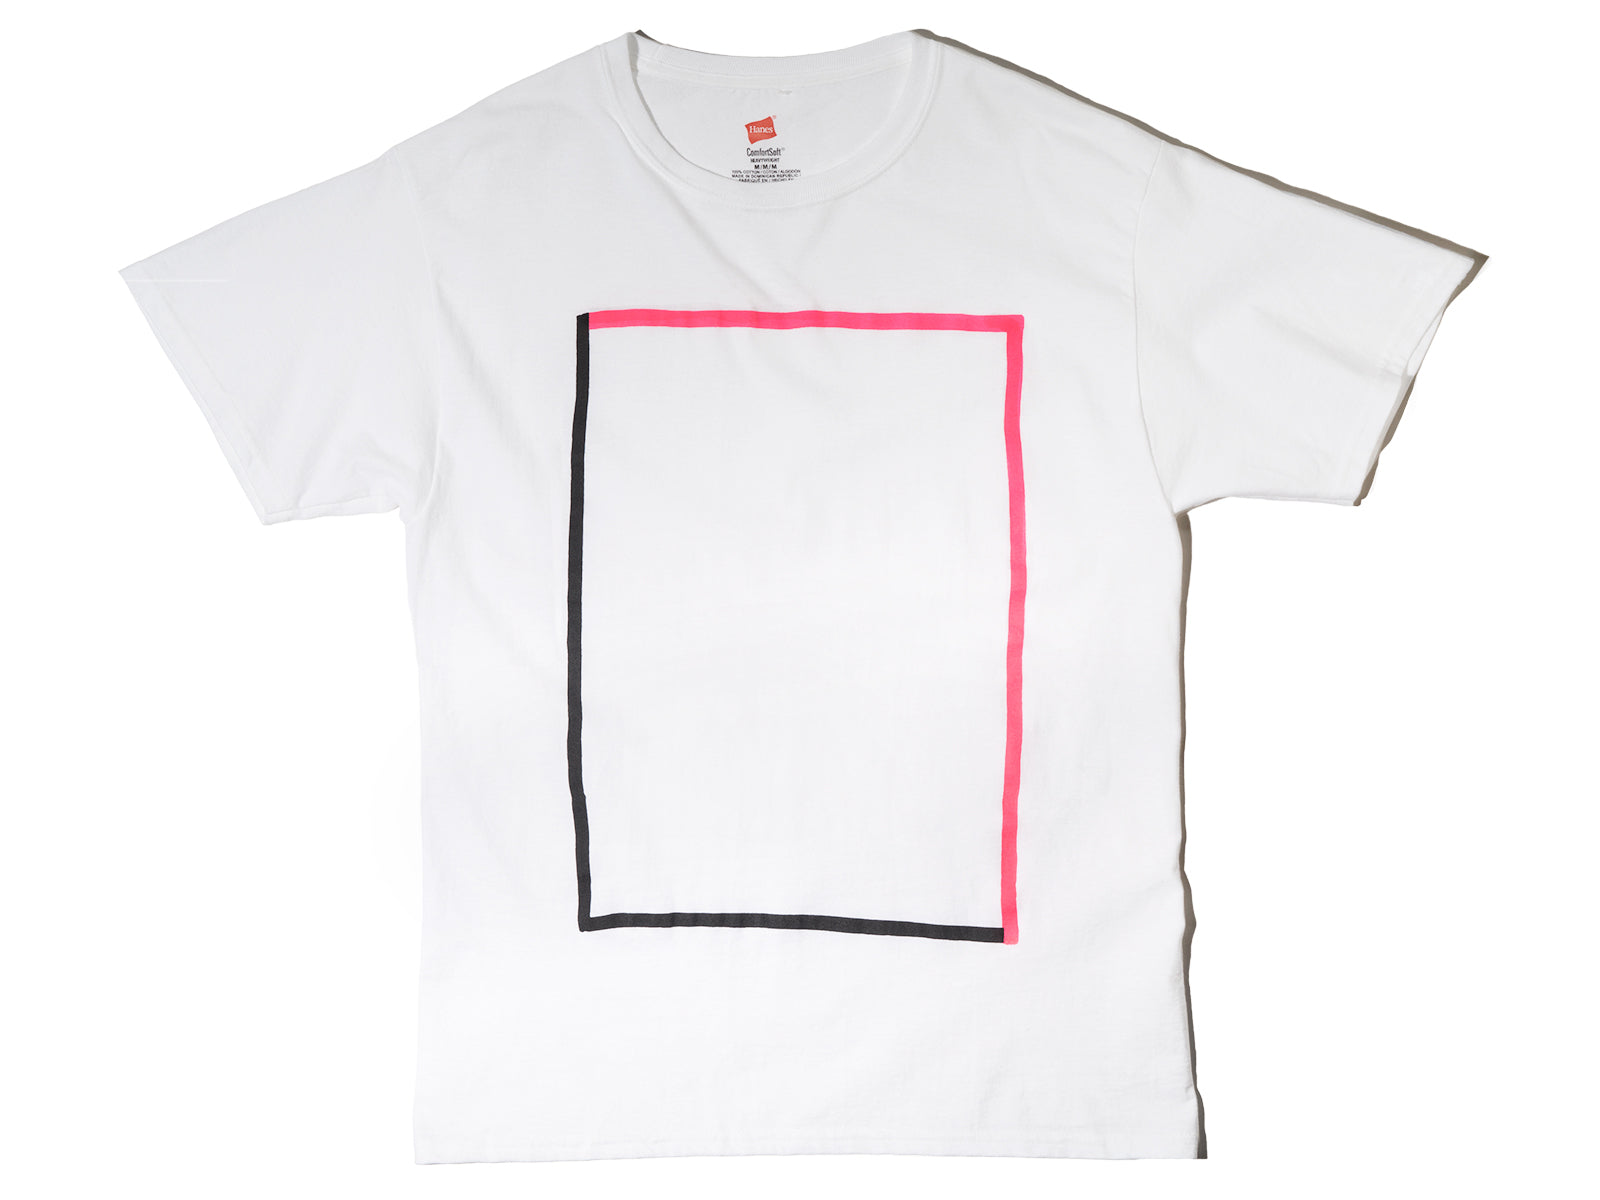 Nordstrom x Hanes Krink Collaboration Tee